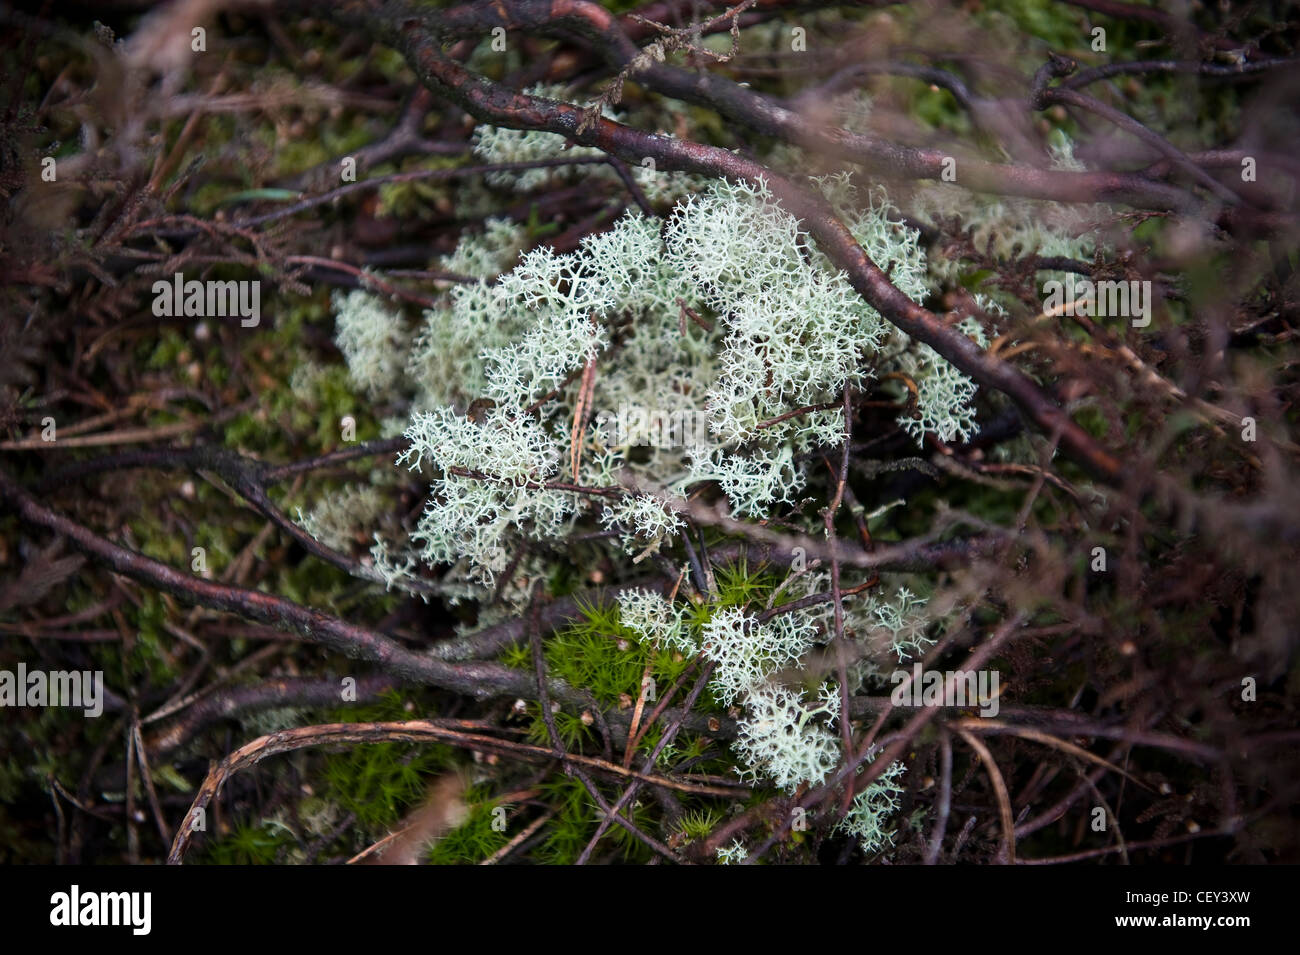 Lichen and moss on Iping Common near Midhurst, West Sussex, UK - Stock Image